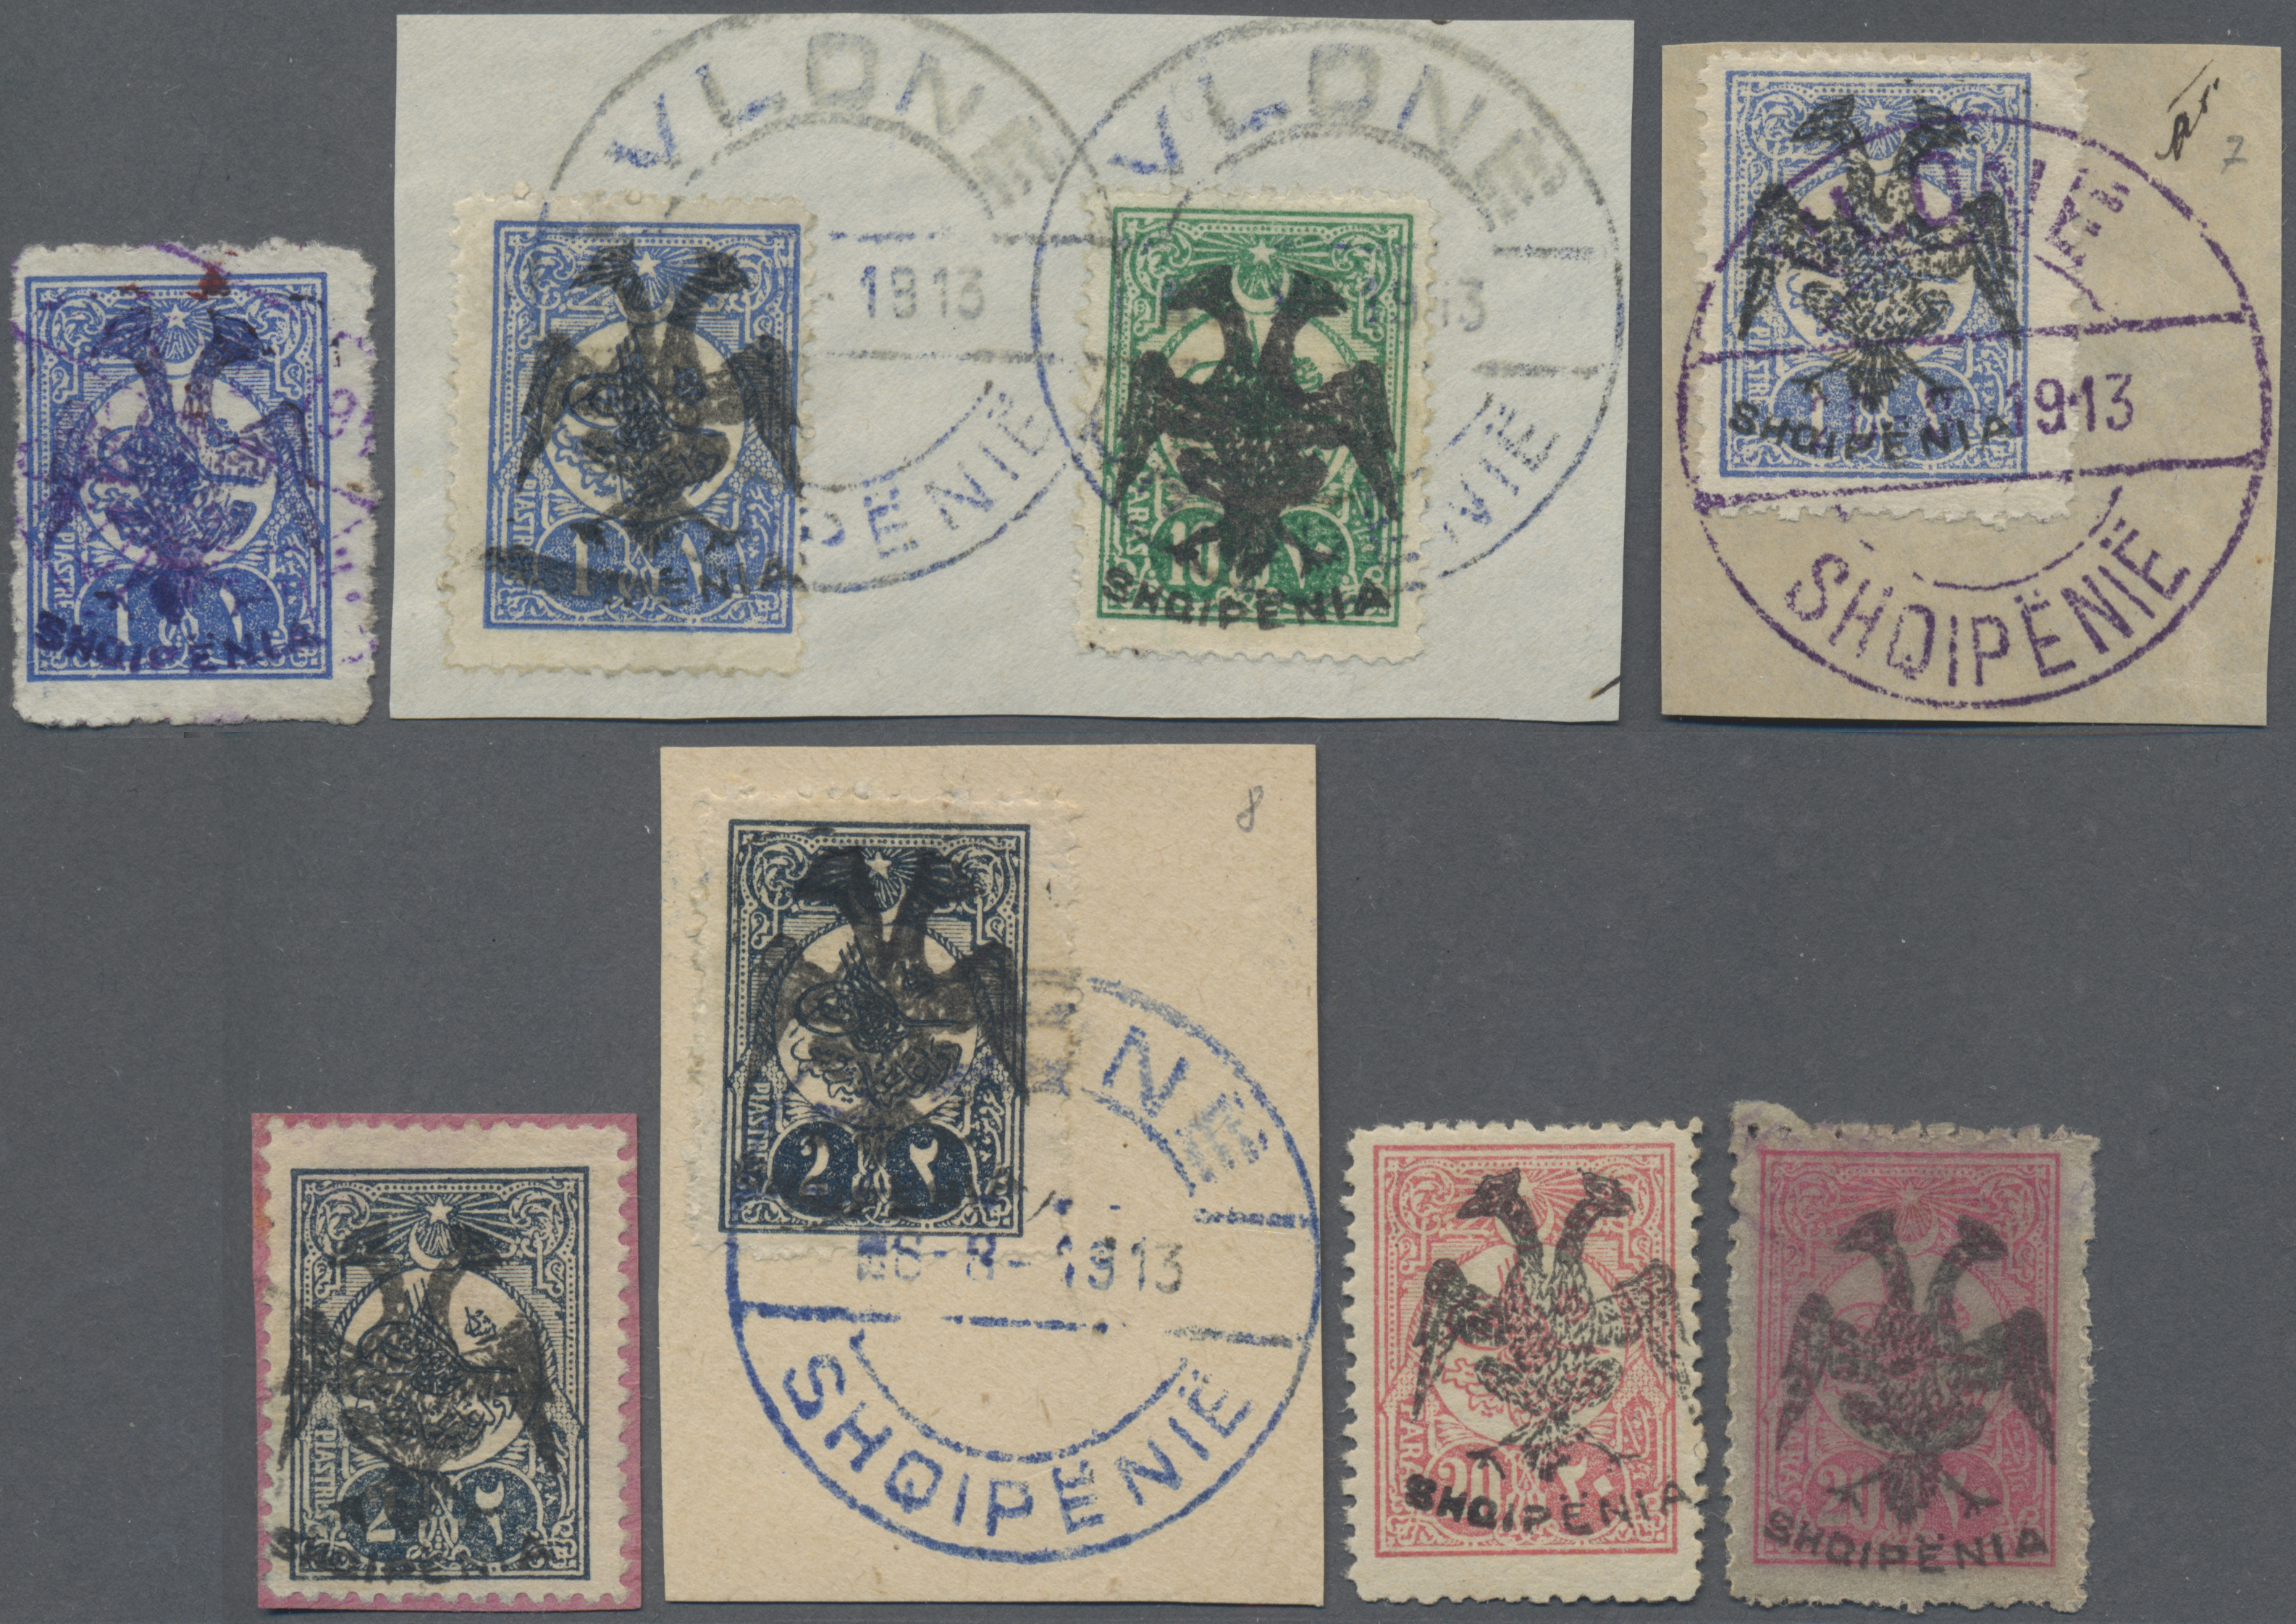 Lot 23611 - albanien  -  Auktionshaus Christoph Gärtner GmbH & Co. KG Sale #46 Collections Worldwide